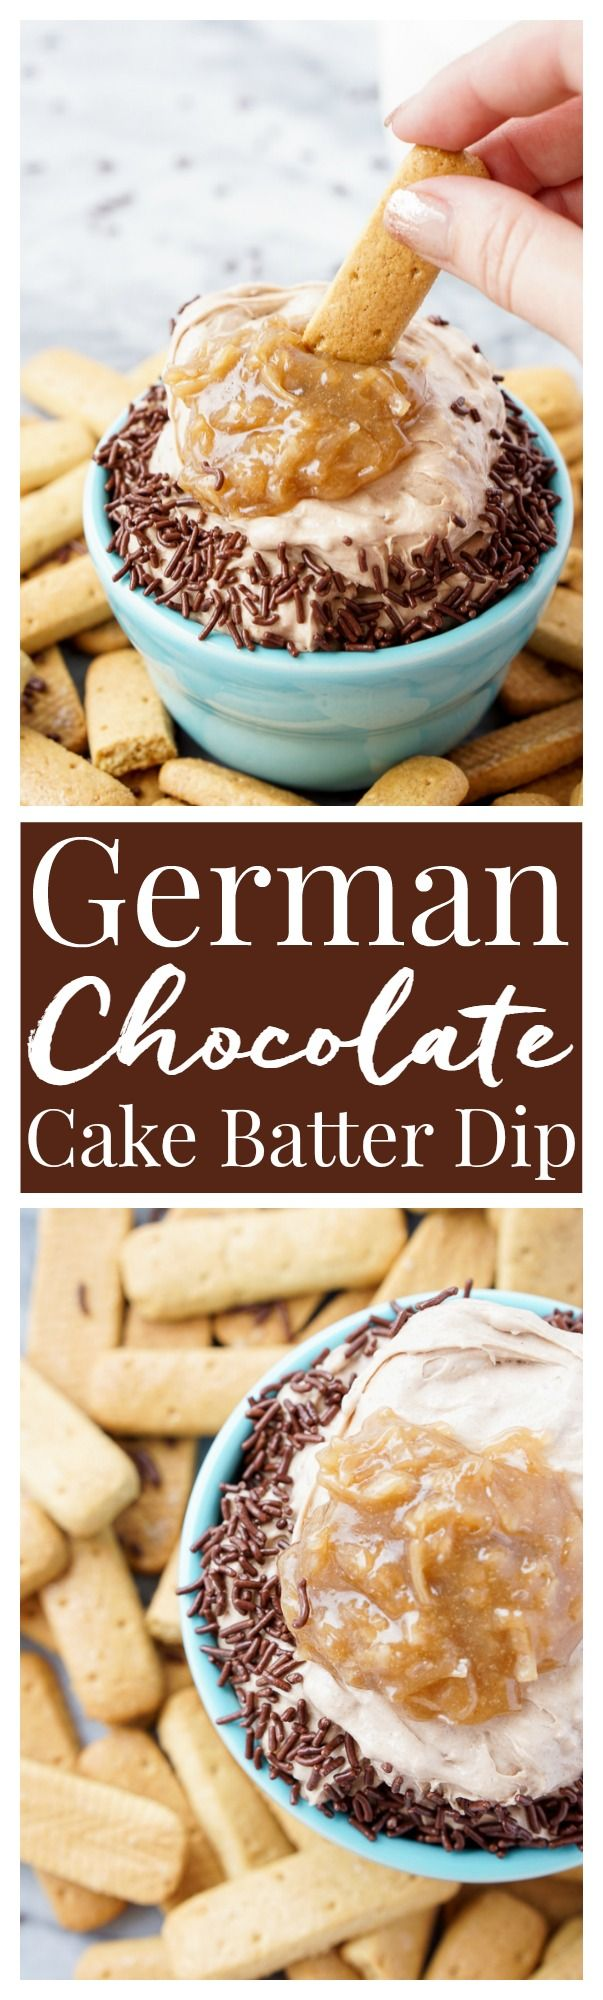 German Chocolate Cake Batter Dip